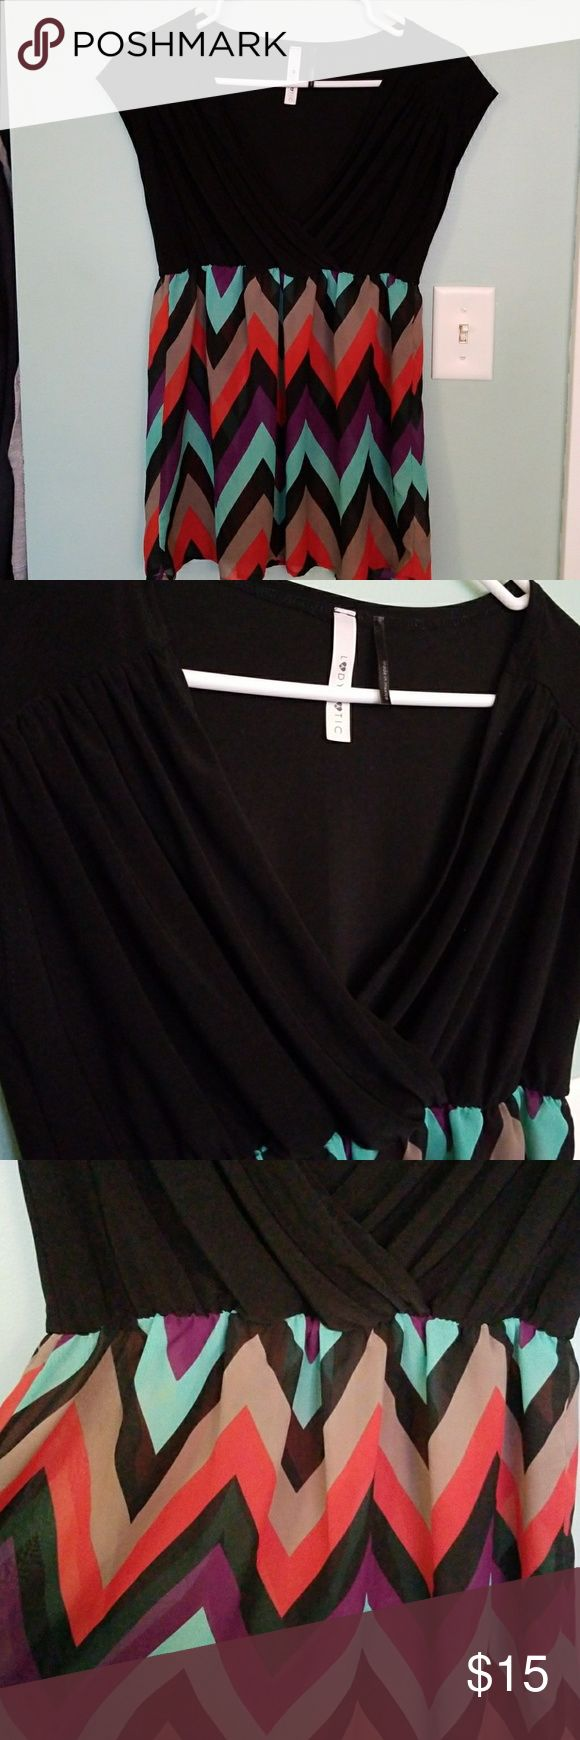 V-neck black and chevron top V-neck black and multi color chevron top.  Size medium, bottom is flowy for flattering fit.  Bottom half of shirt is shear.  Great condition, no tears, stains or holes. Lady Matic Tops Blouses